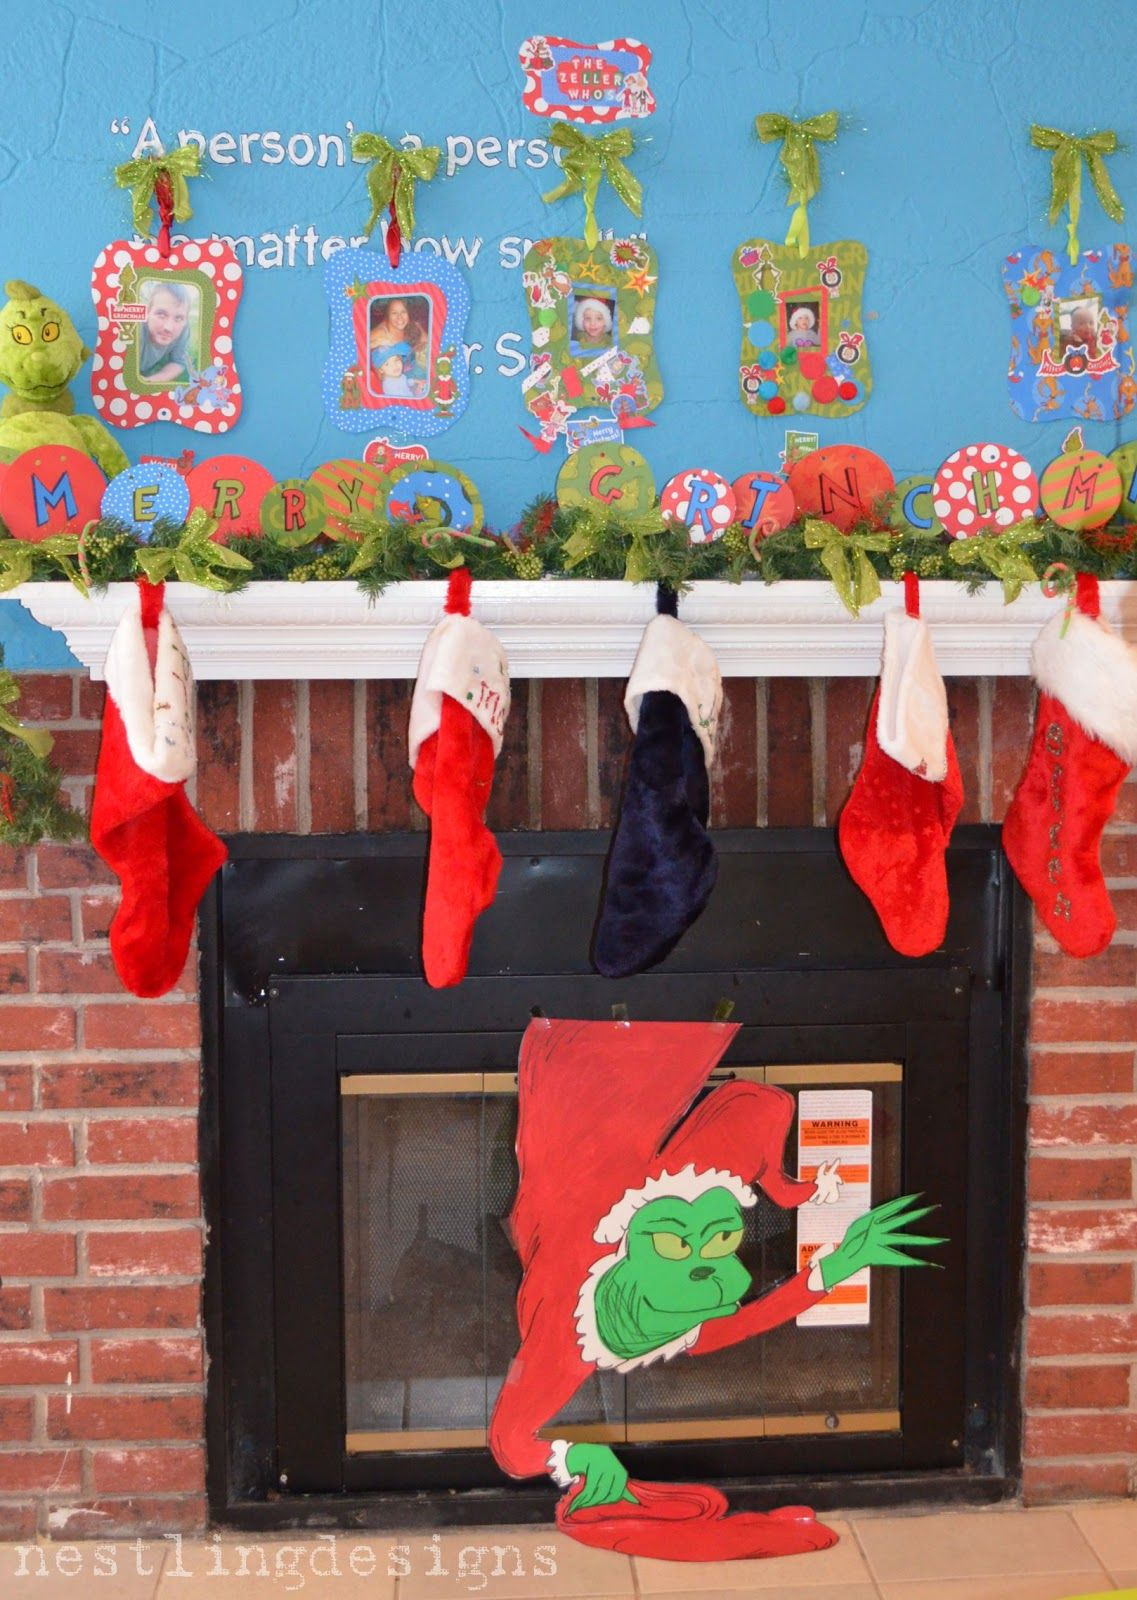 Have the Grinch come out of the fireplace #grinch #